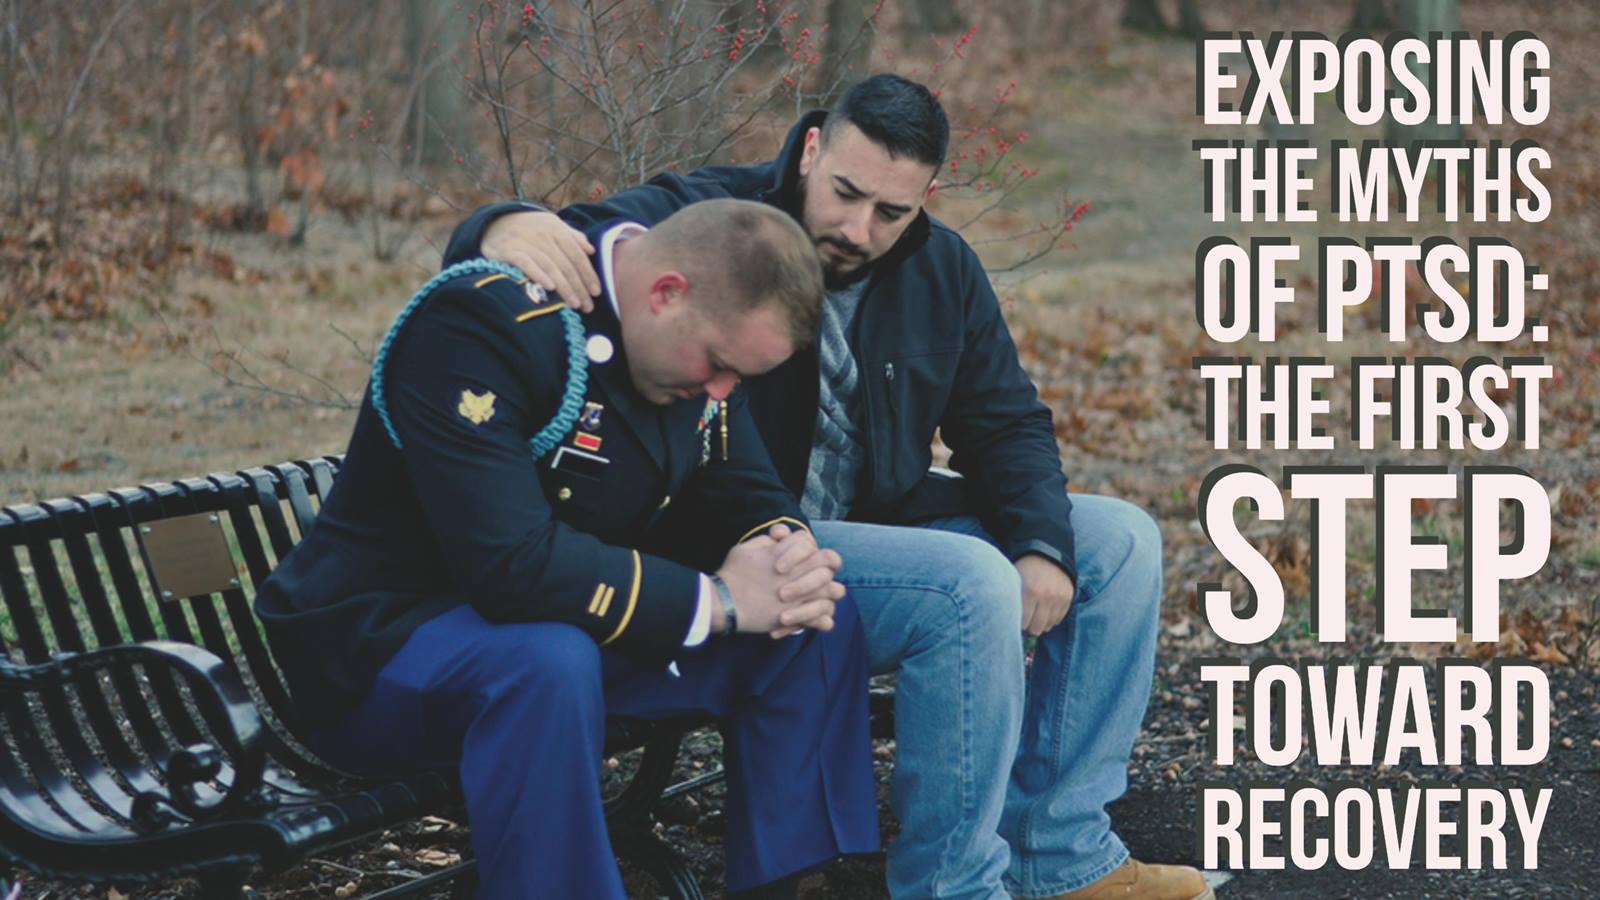 Exposing The Myths Of Ptsd